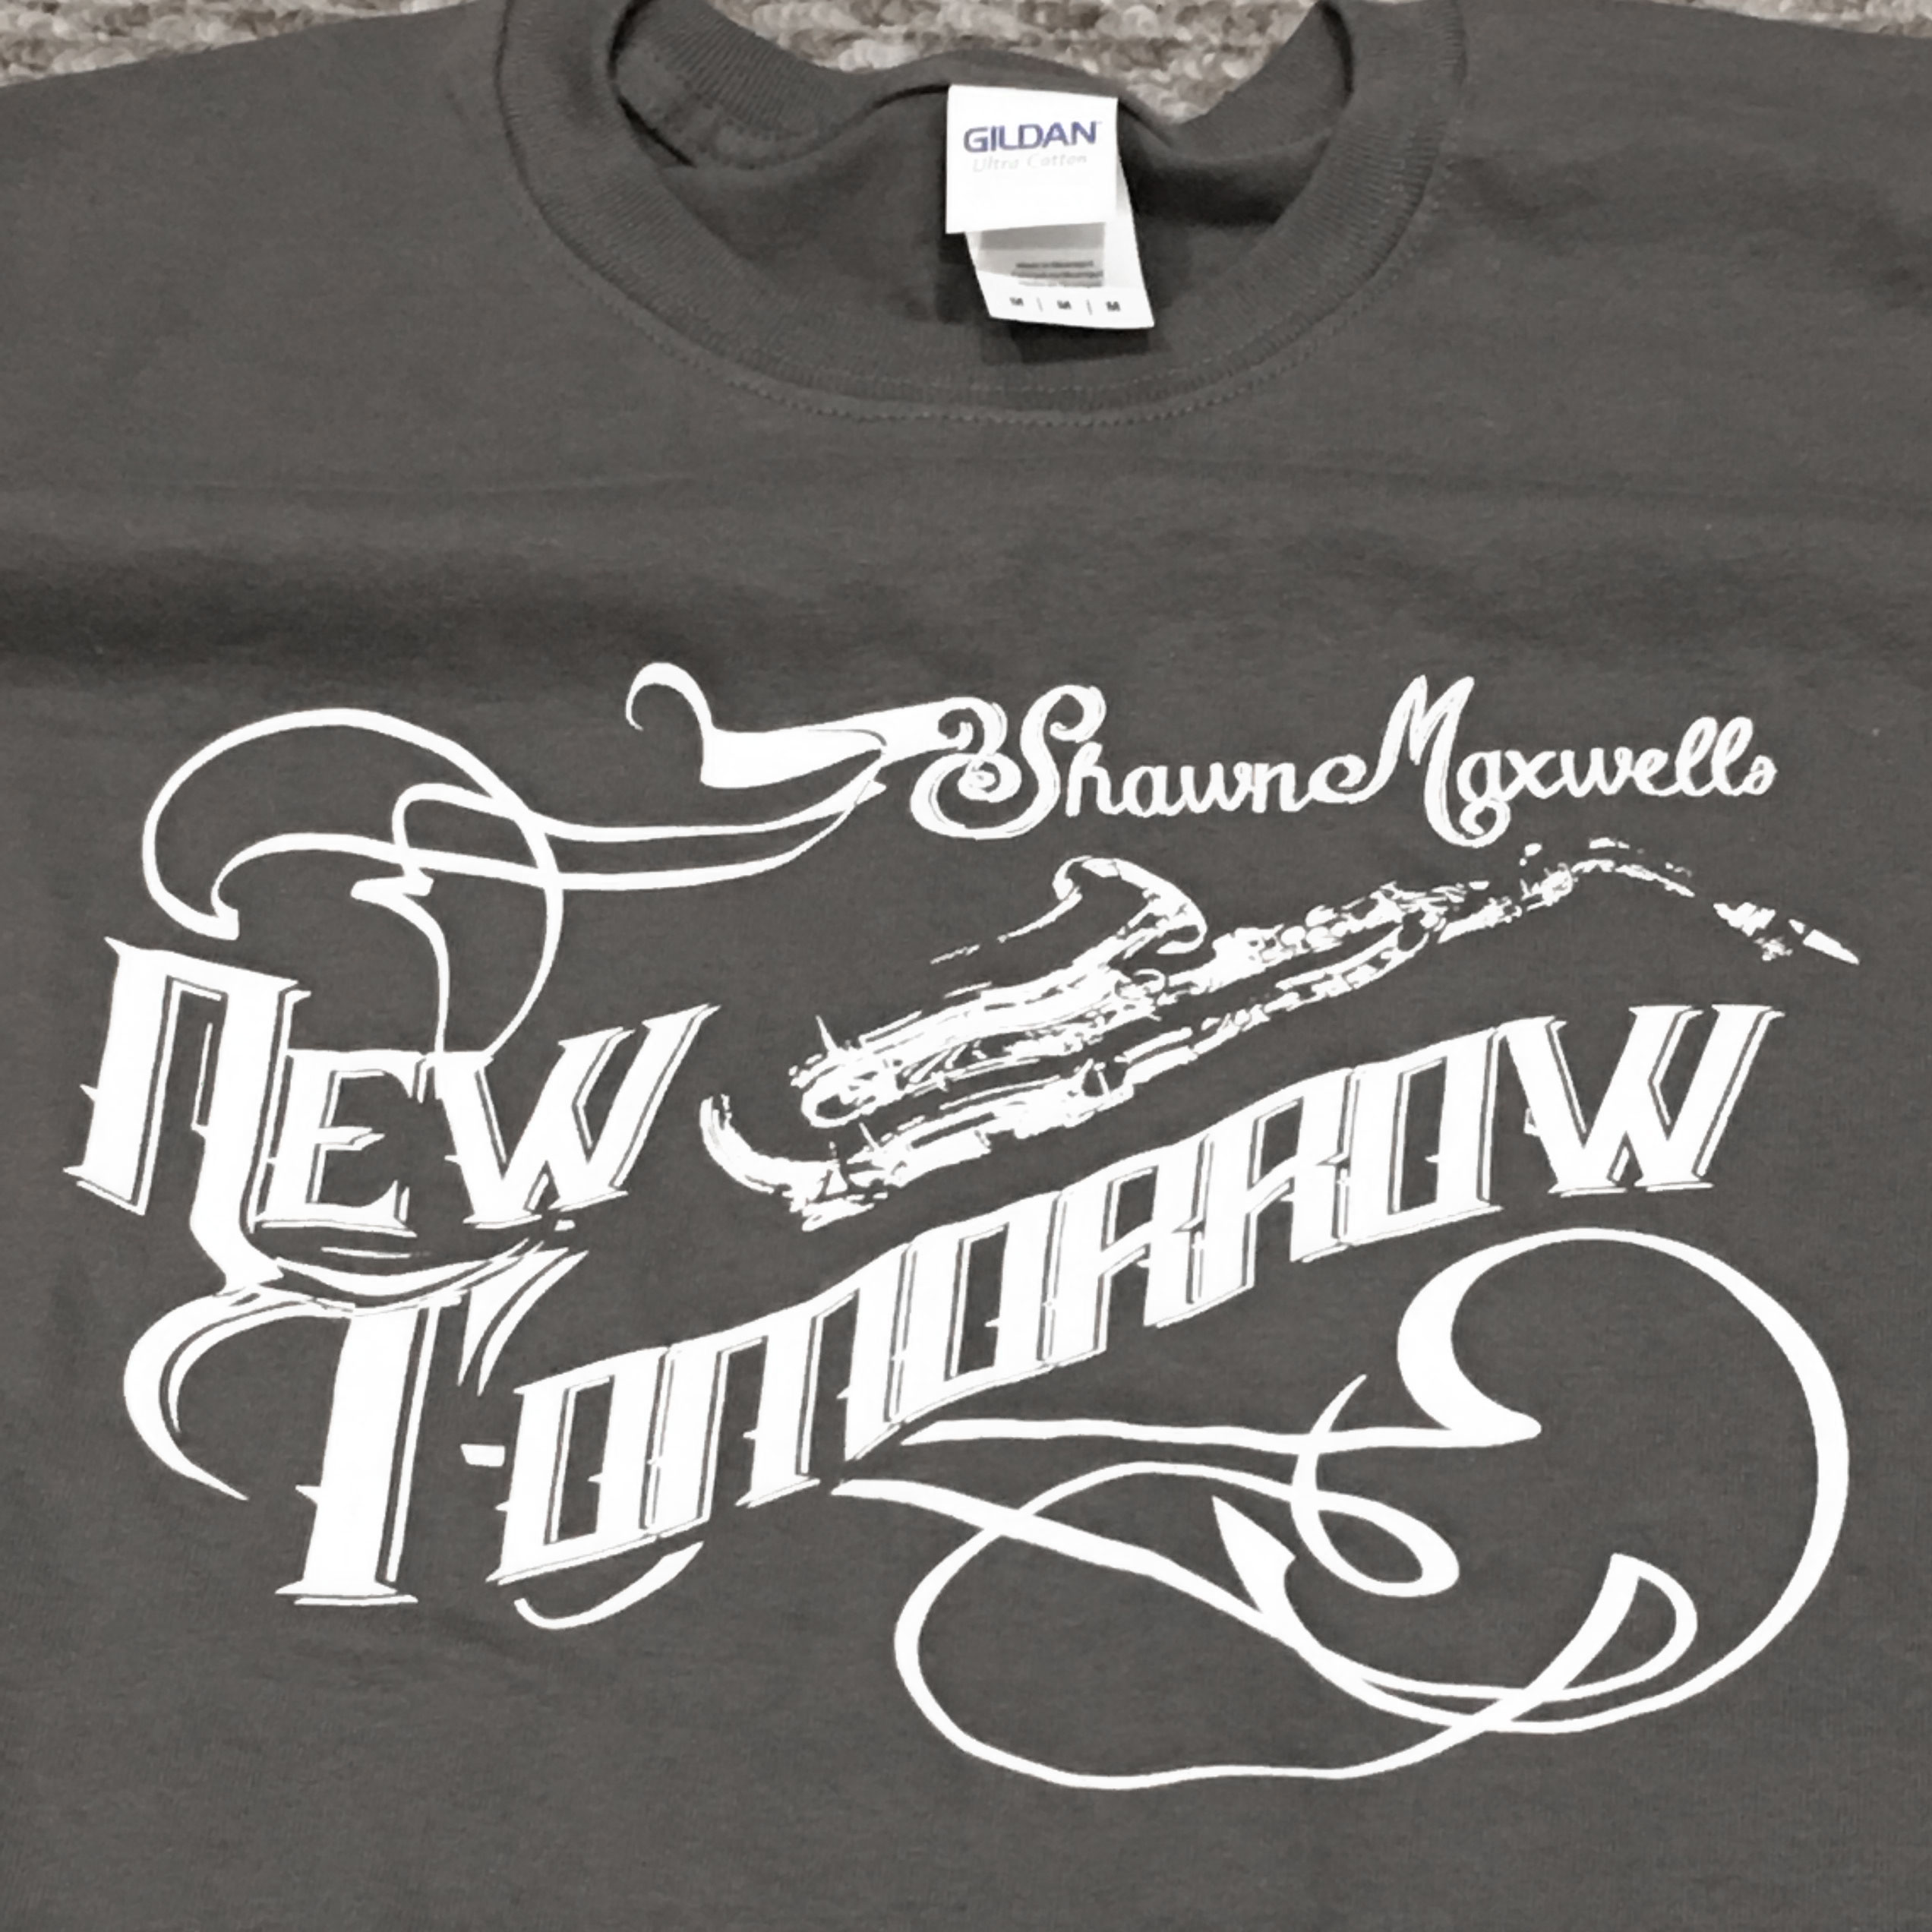 Shawn Maxwell's New Tomorrow T-Shirt Detail